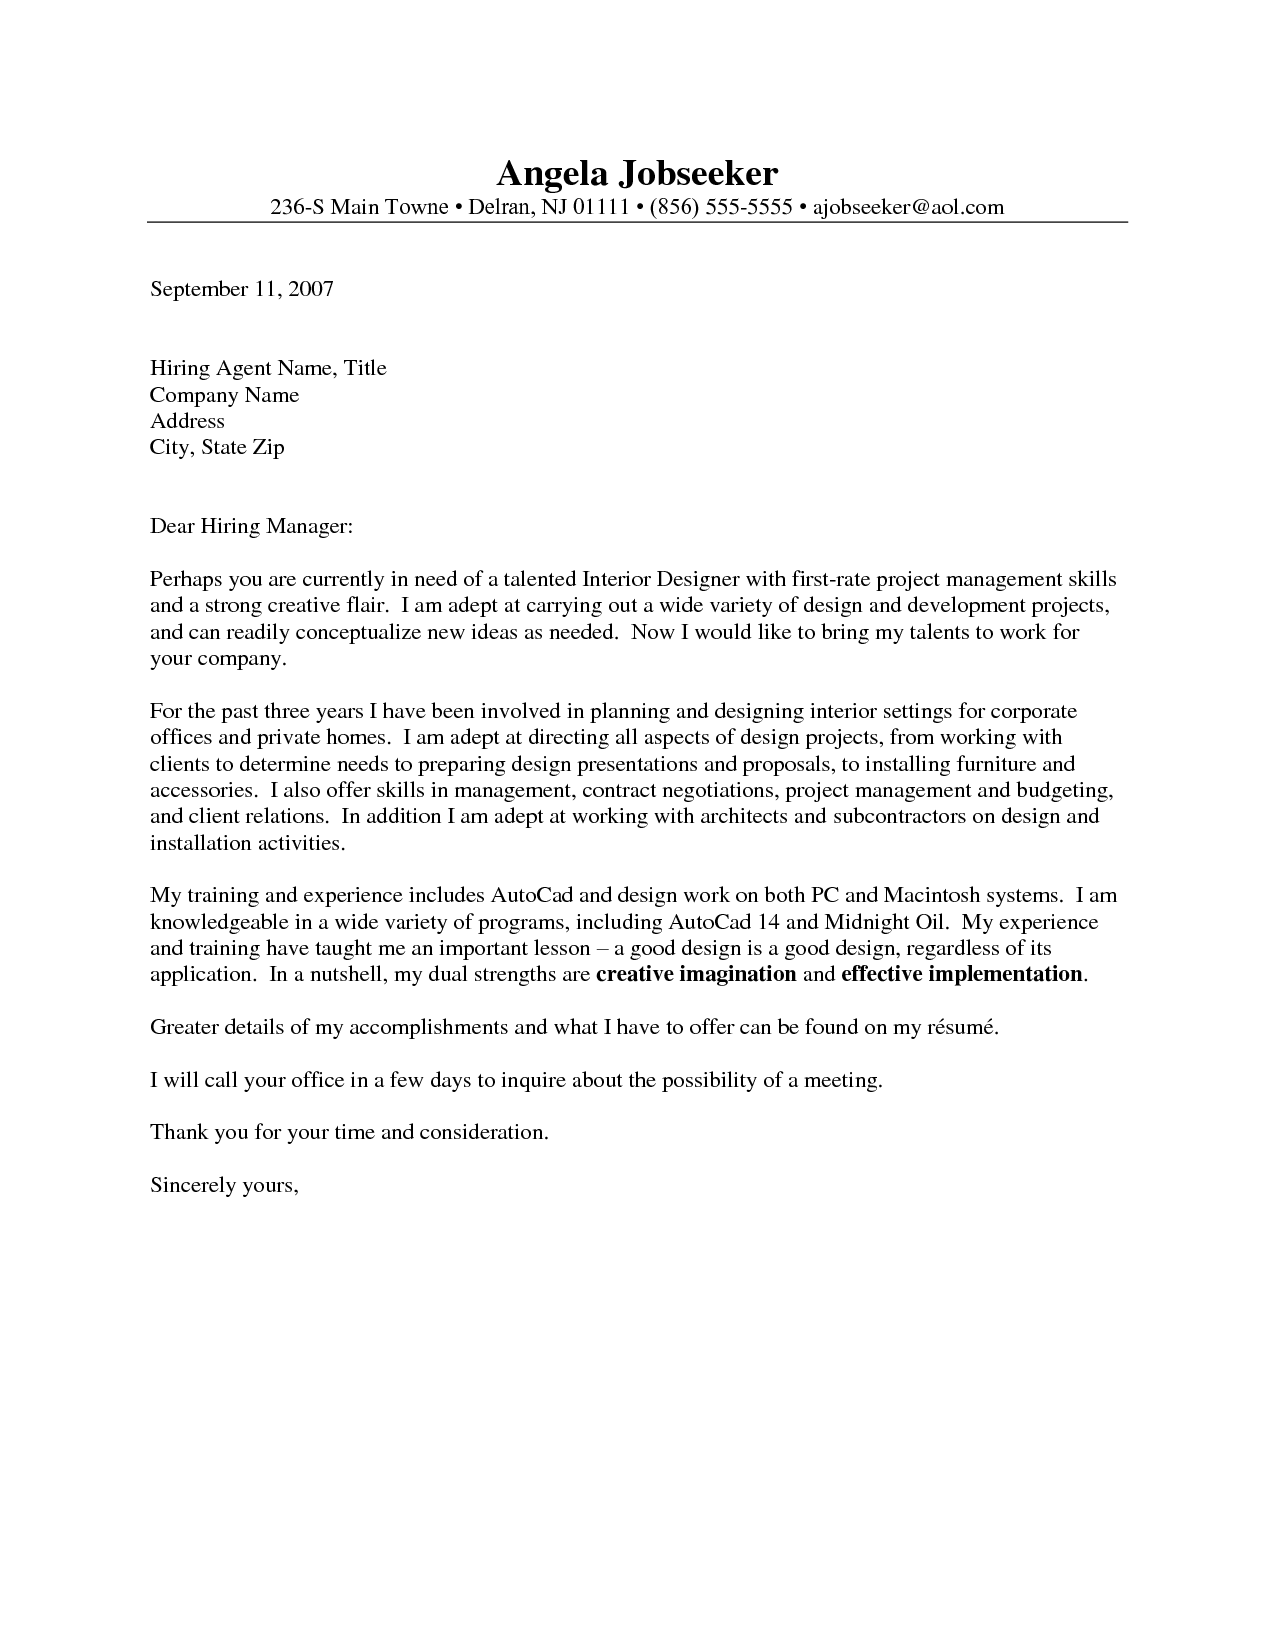 outstanding cover letter examples interior design cover letter example - How To Write A Great Cover Letter Examples